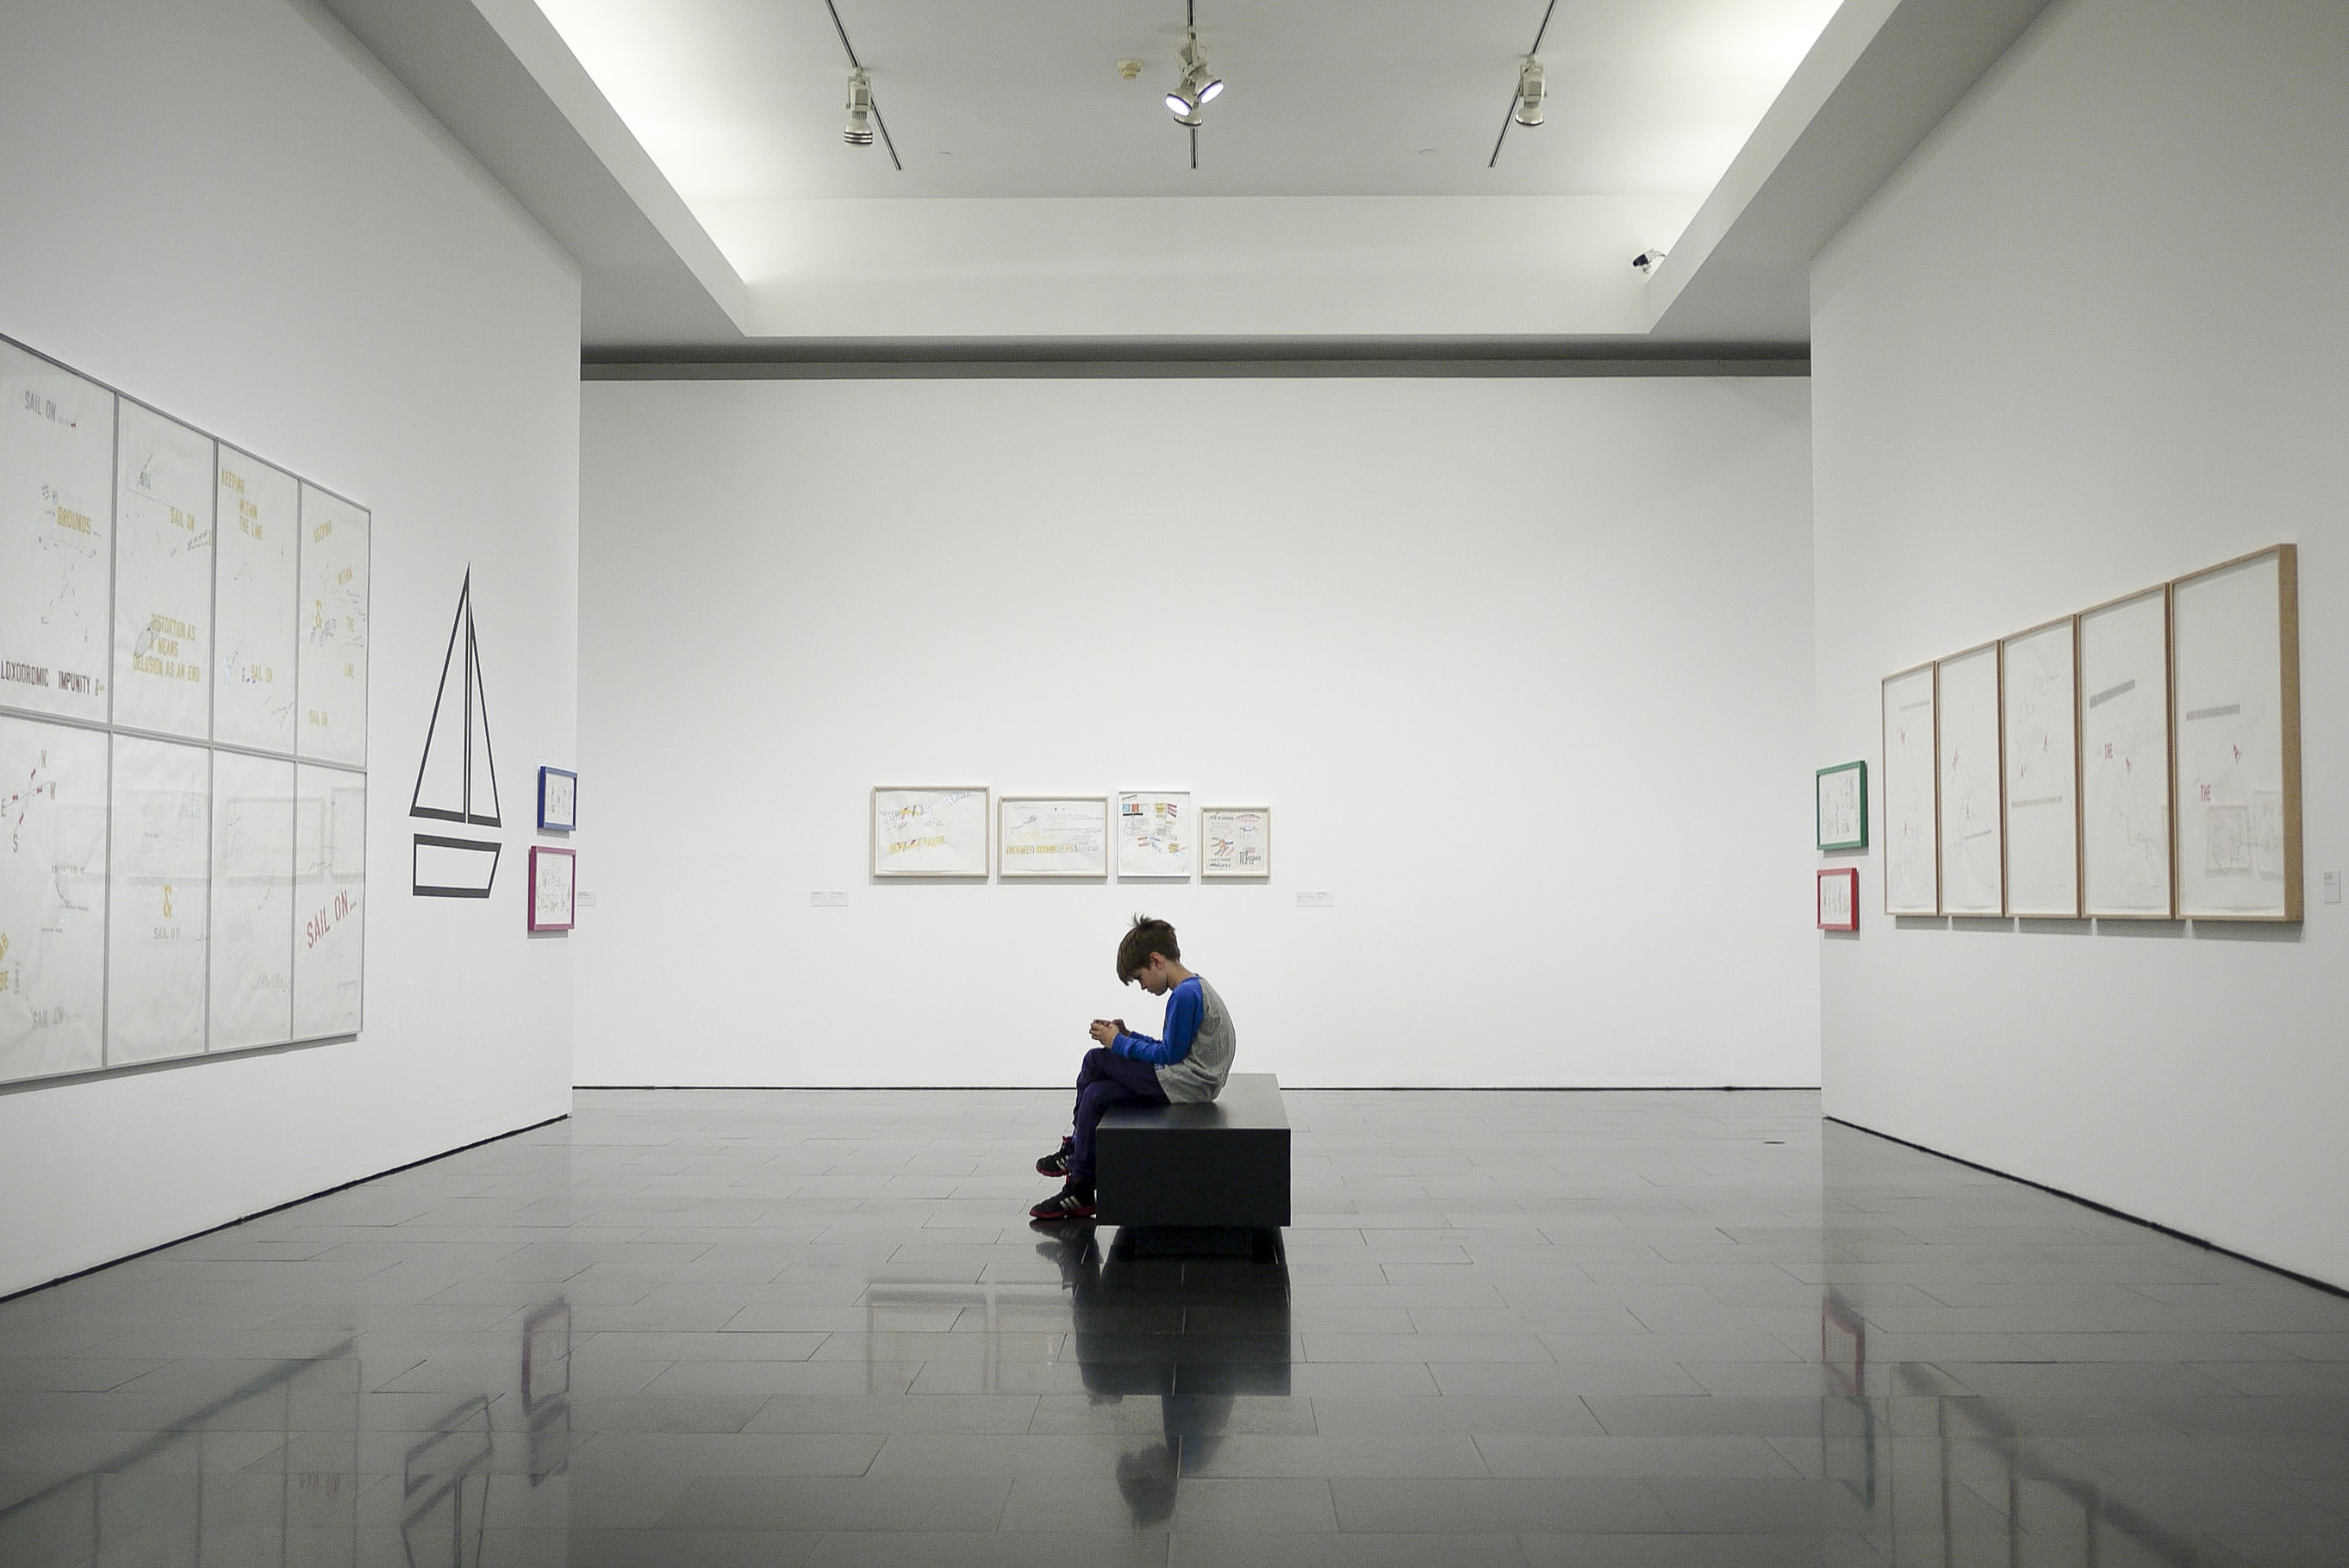 Boy sitting alone inside large gallery room with white walls viewing exhibition in Barcelona